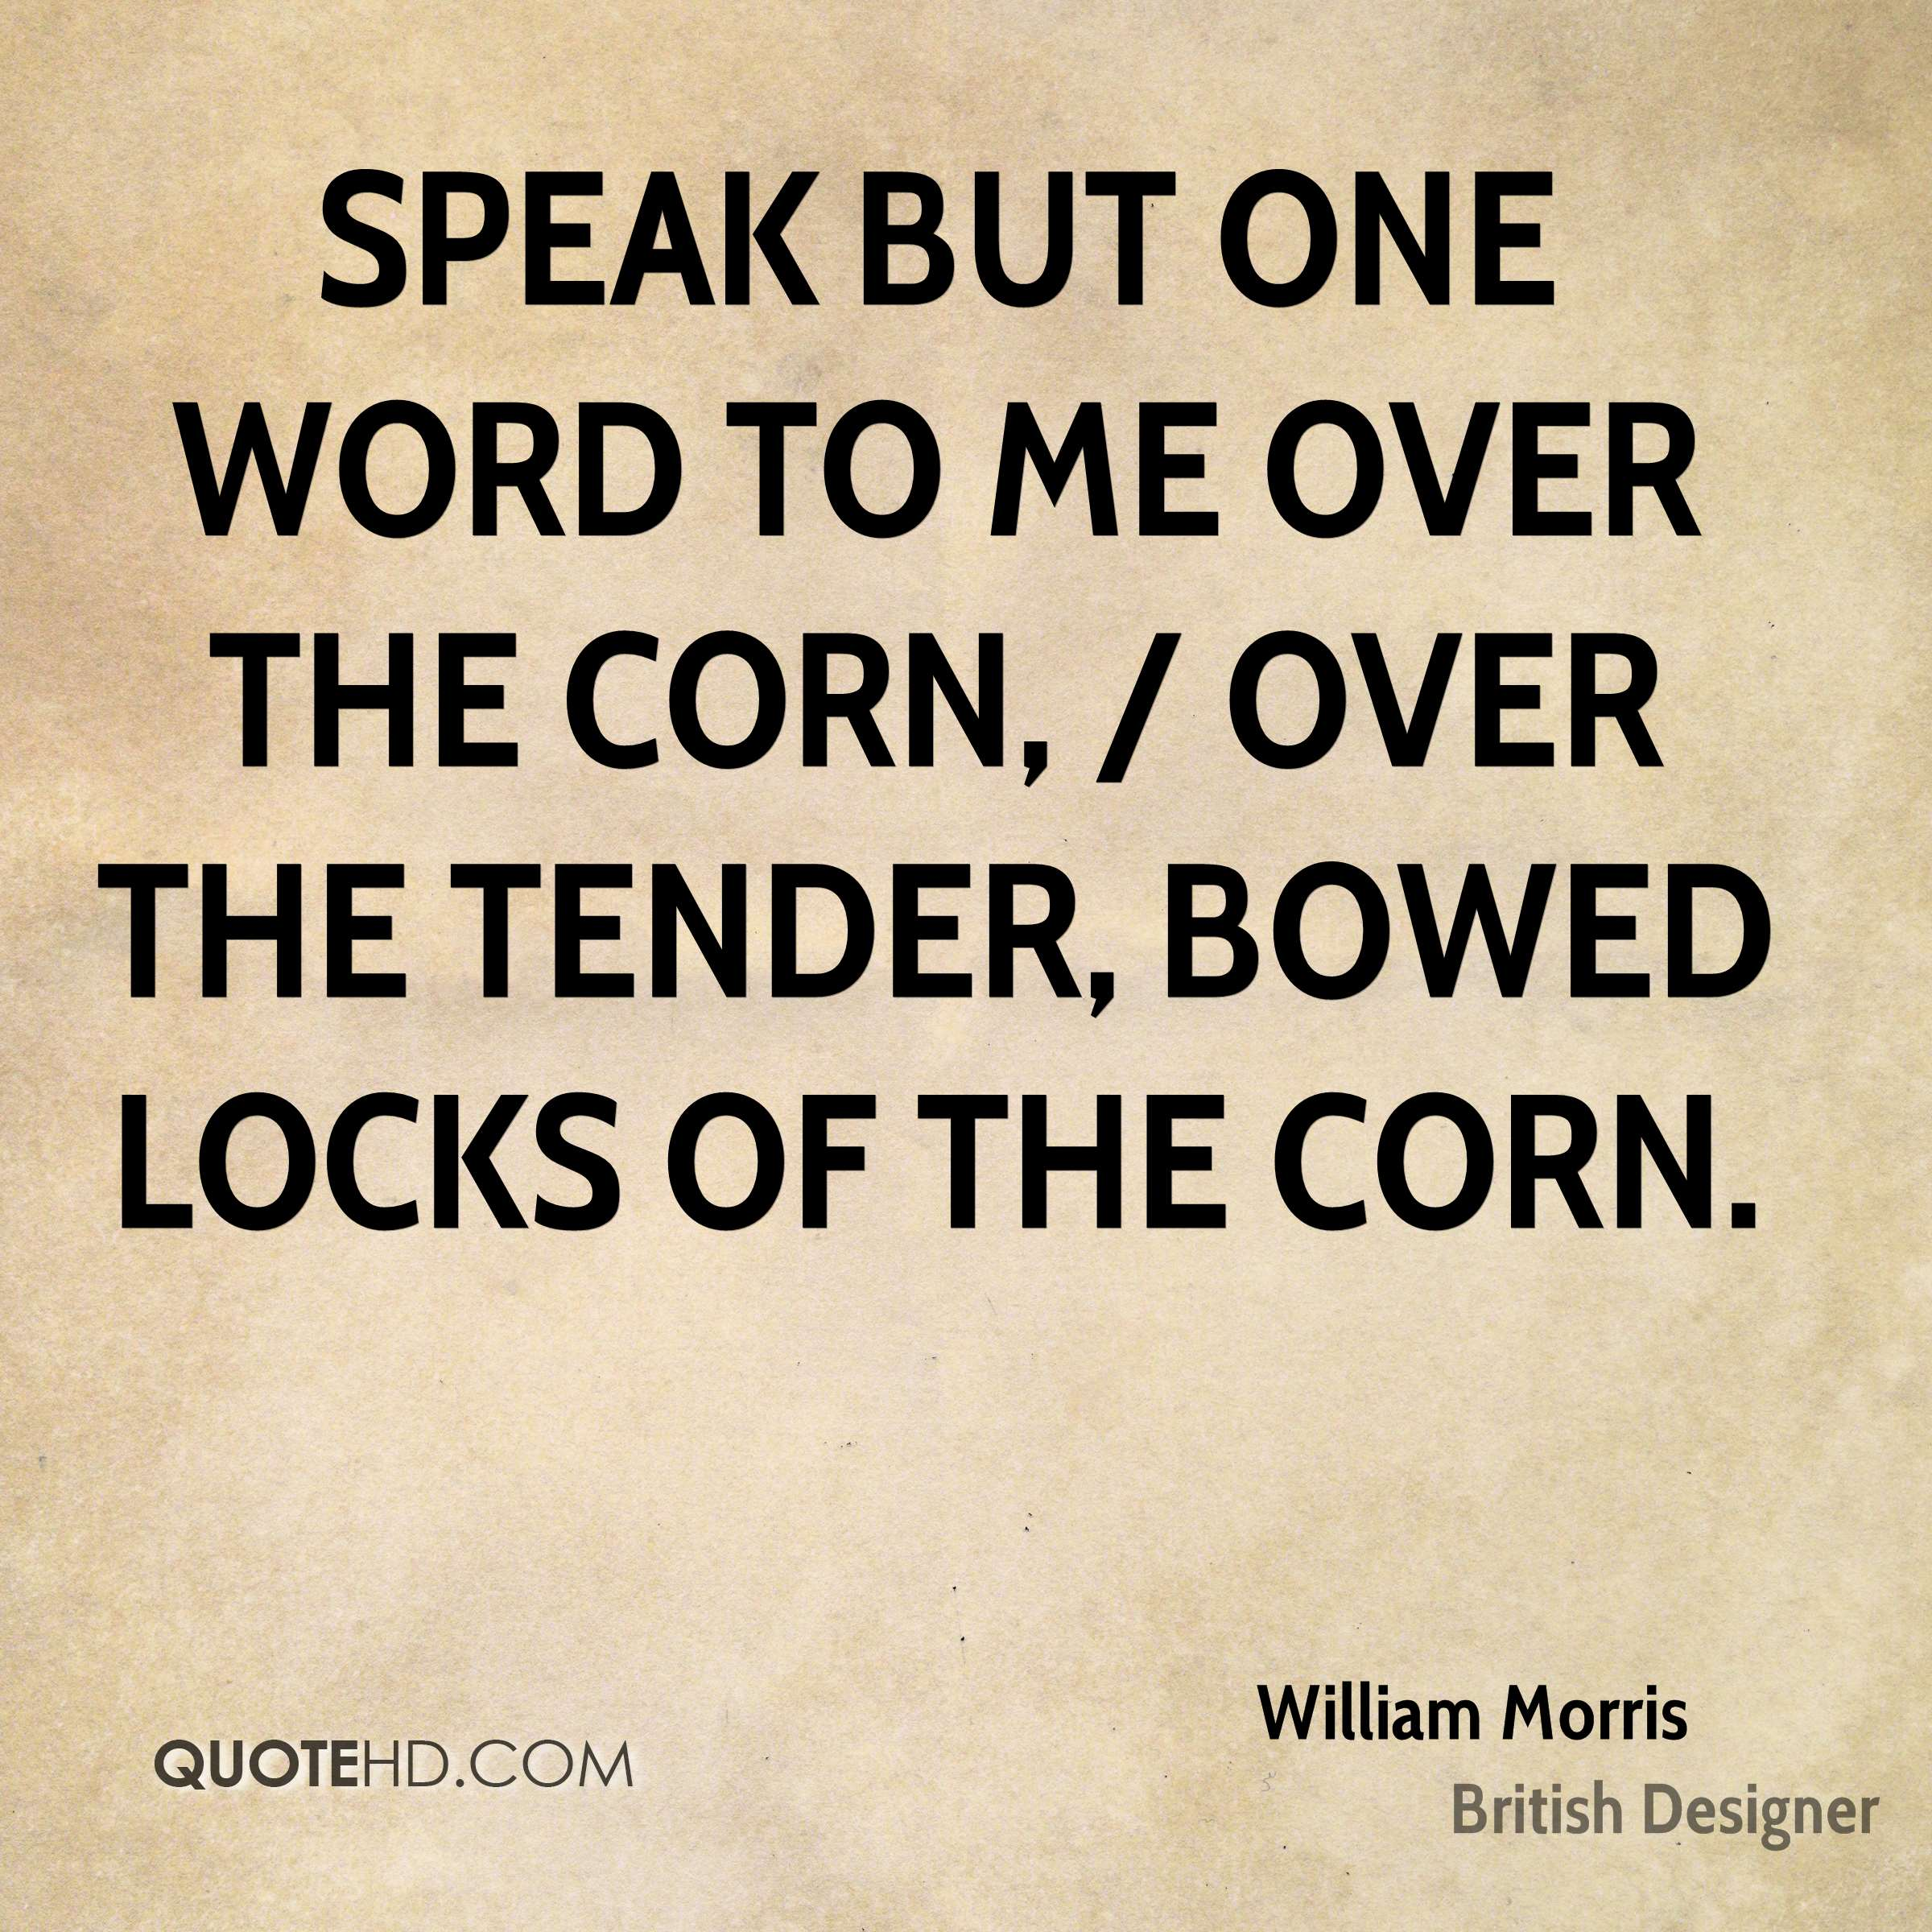 Speak but one word to me over the corn, / Over the tender, bowed locks of the corn.